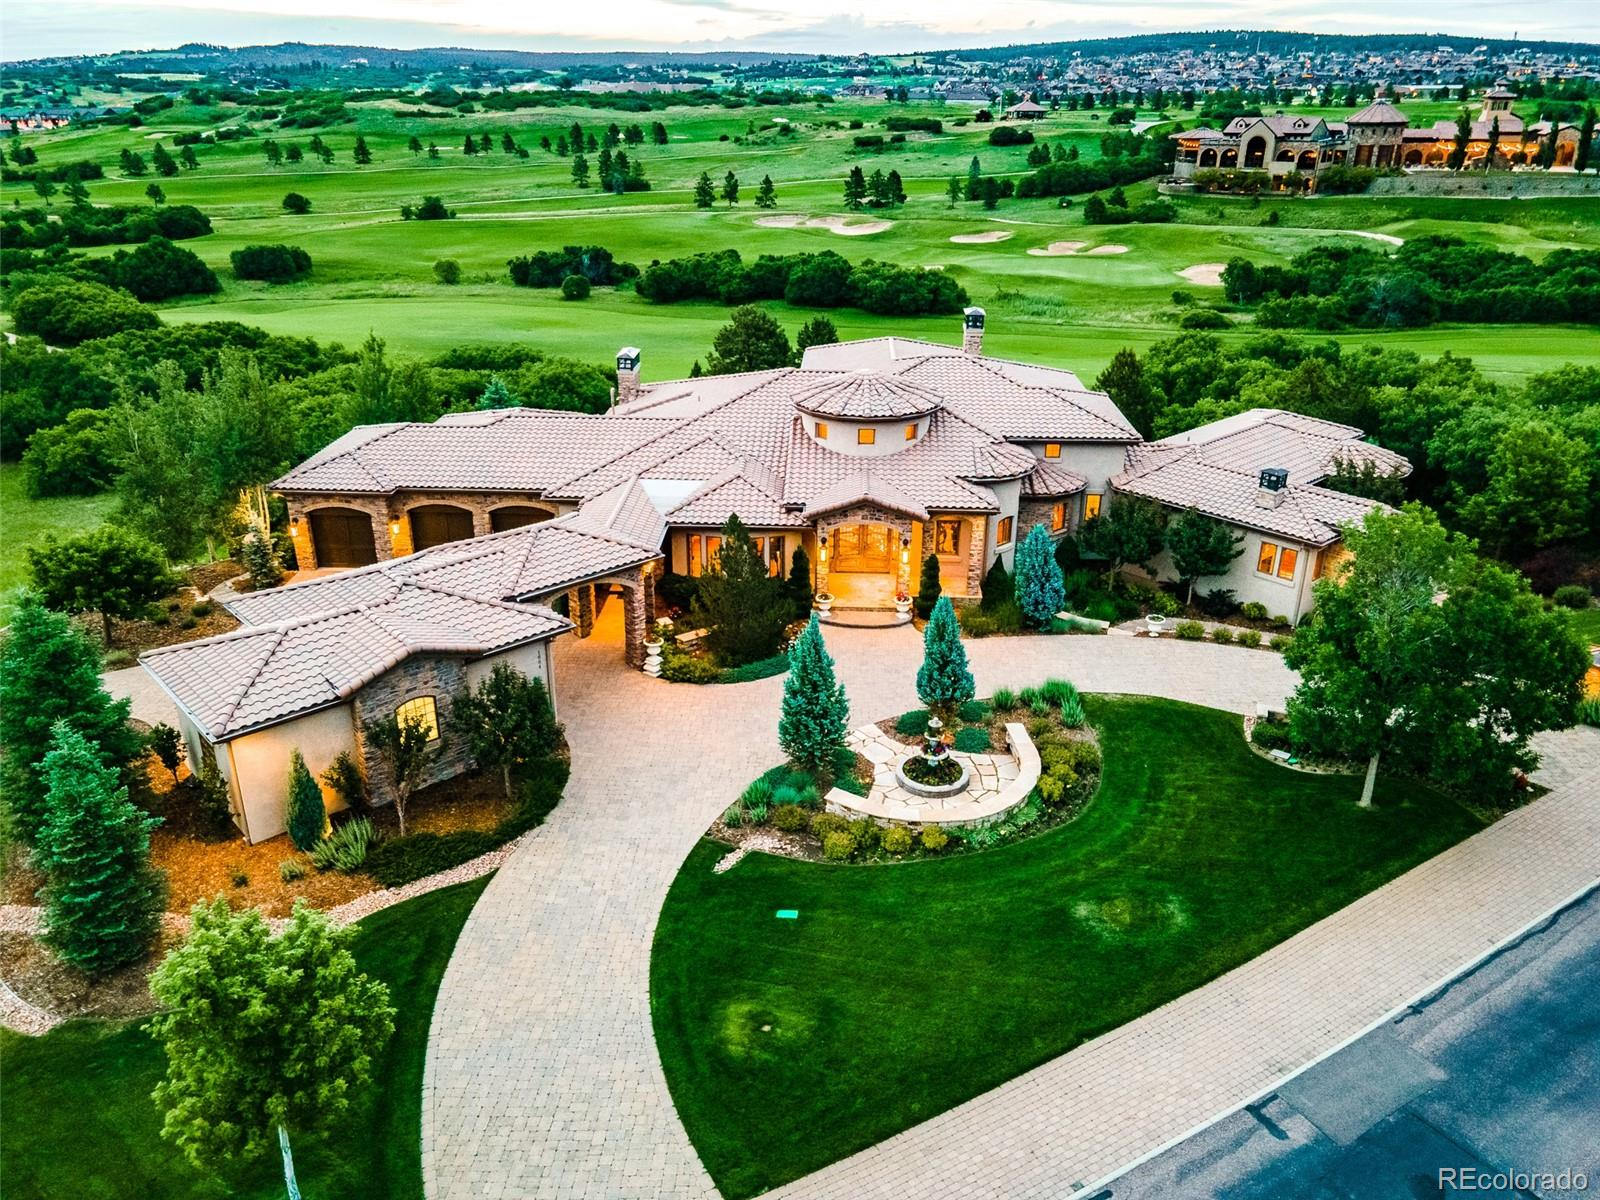 Layers of unparalleled decadence unfurl within this lavish estate nestled just minutes from I-25 in northern Colorado Springs. Over 1,200 sq ft of Tuscan-inspired outdoor living space crafts a resplendent composition that flows into a luxurious interior. Grounded by marble floors, an entryway steeped in grandeur sets the stage for an illustrious home to follow, including a nearby formal dining space with cascades of natural light. Revel in a great room defined by rich built-ins, a vast fireplace and floor-to-ceiling windows that overlook the golf course. A kitchen with top-tier appliances, miles of wood cabinetry and an island with seating beckons endless dinner parties with the convenience of outdoor access to the built-in kitchen and balcony. Each bedroom is en-suite, including a primary haven equipped with a peninsula fireplace, expansive walk-in closet and a private balcony. The bathroom is a masterclass in spa-like allure with a vast shower, deep soaking tub and serene lighting. A remarkable lower level sets new standards for at-home entertaining with a wet bar/mini kitchen, pool room, wine cellar, velvet-wrapped theater and multiple vignettes for private conversations. A secluded sauna suite amplifies the resort-like appeal of this home, functioning as a private spa for a heavenly retreat. This is Colorado Springs living at its finest.